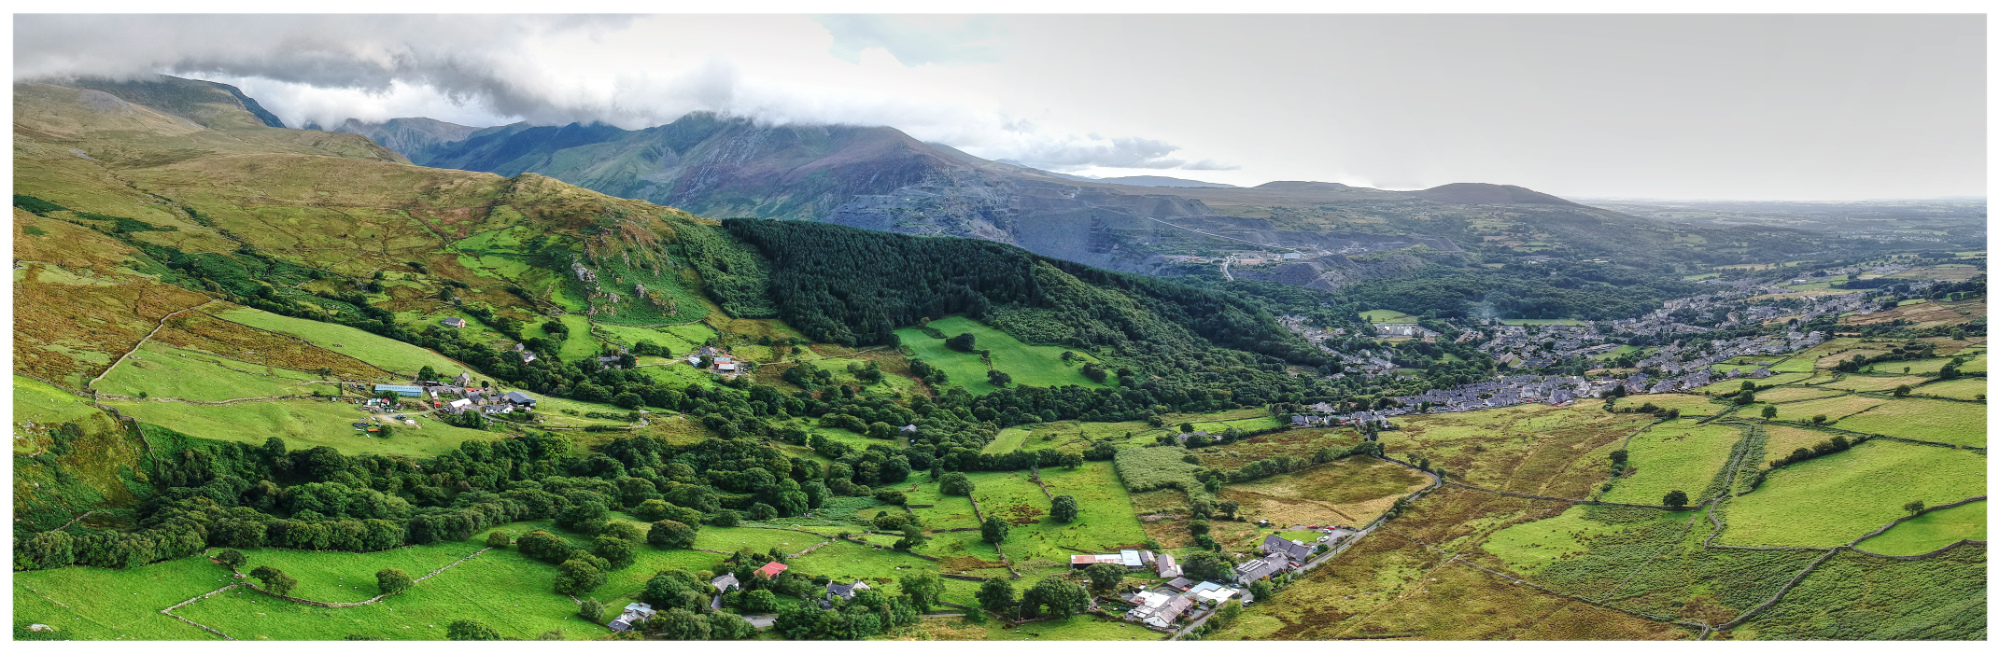 Bethesda in Snowdonia, North Wales